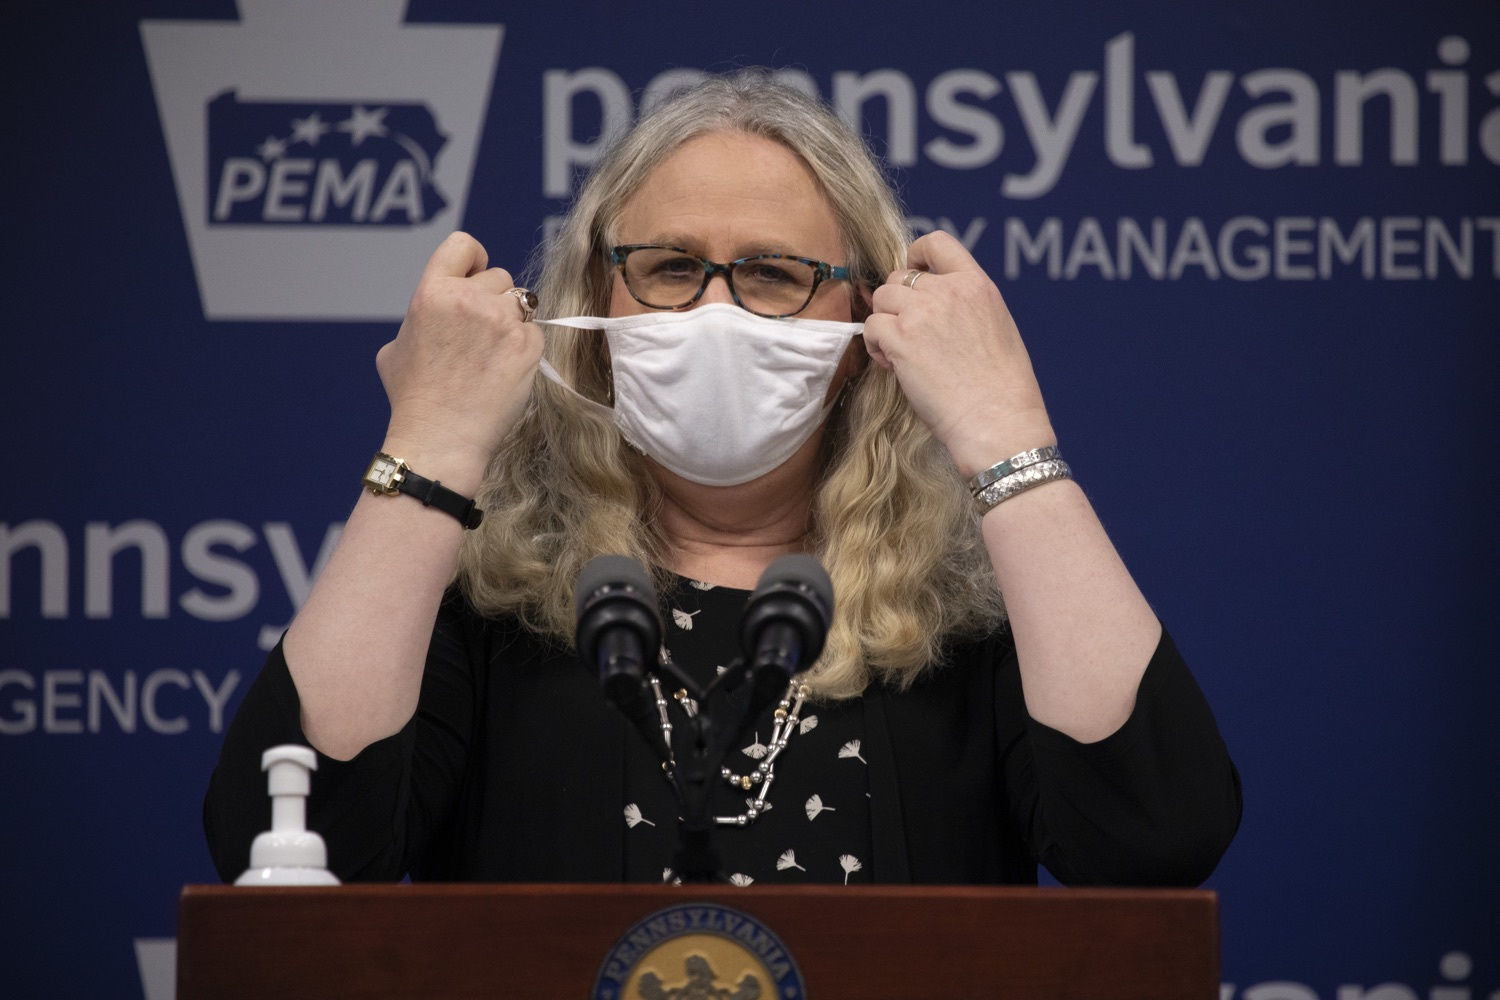 "<a href=""https://filesource.wostreaming.net/commonwealthofpa/photo/18258_doh_covidUpdate_dz_012.jpg"" target=""_blank"">⇣ Download Photo<br></a>Pennsylvania Secretary of Health Dr. Rachel Levine speaking to the press.  The Pennsylvania Department of Health today confirmed as of 12:00 a.m., September 14, that there were 638 additional positive cases of COVID-19 on September 13 and 620 additional positive cases of COVID-19 on September 14, bringing the statewide total to 145,063. All 67 counties in Pennsylvania have cases of COVID-19.  SEPTEMBER 14, 2020 - HARRISBURG, PA"